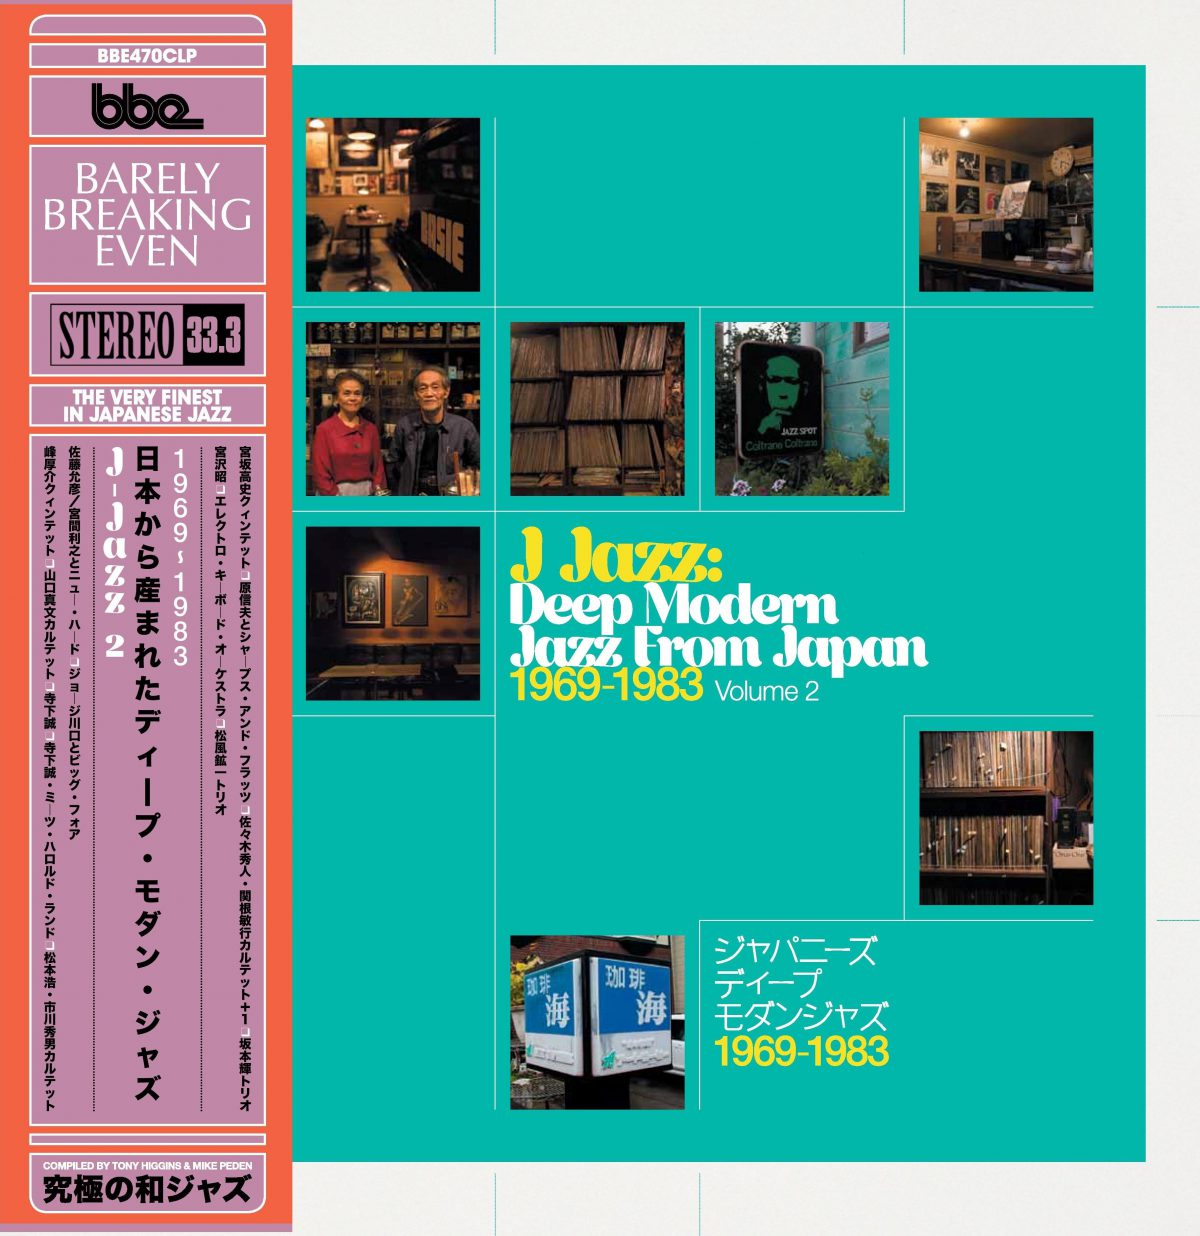 Various Artists - J Jazz Volume 2 – Deep Modern Jazz From Japan 1969 – 1983 - Hot Salvation